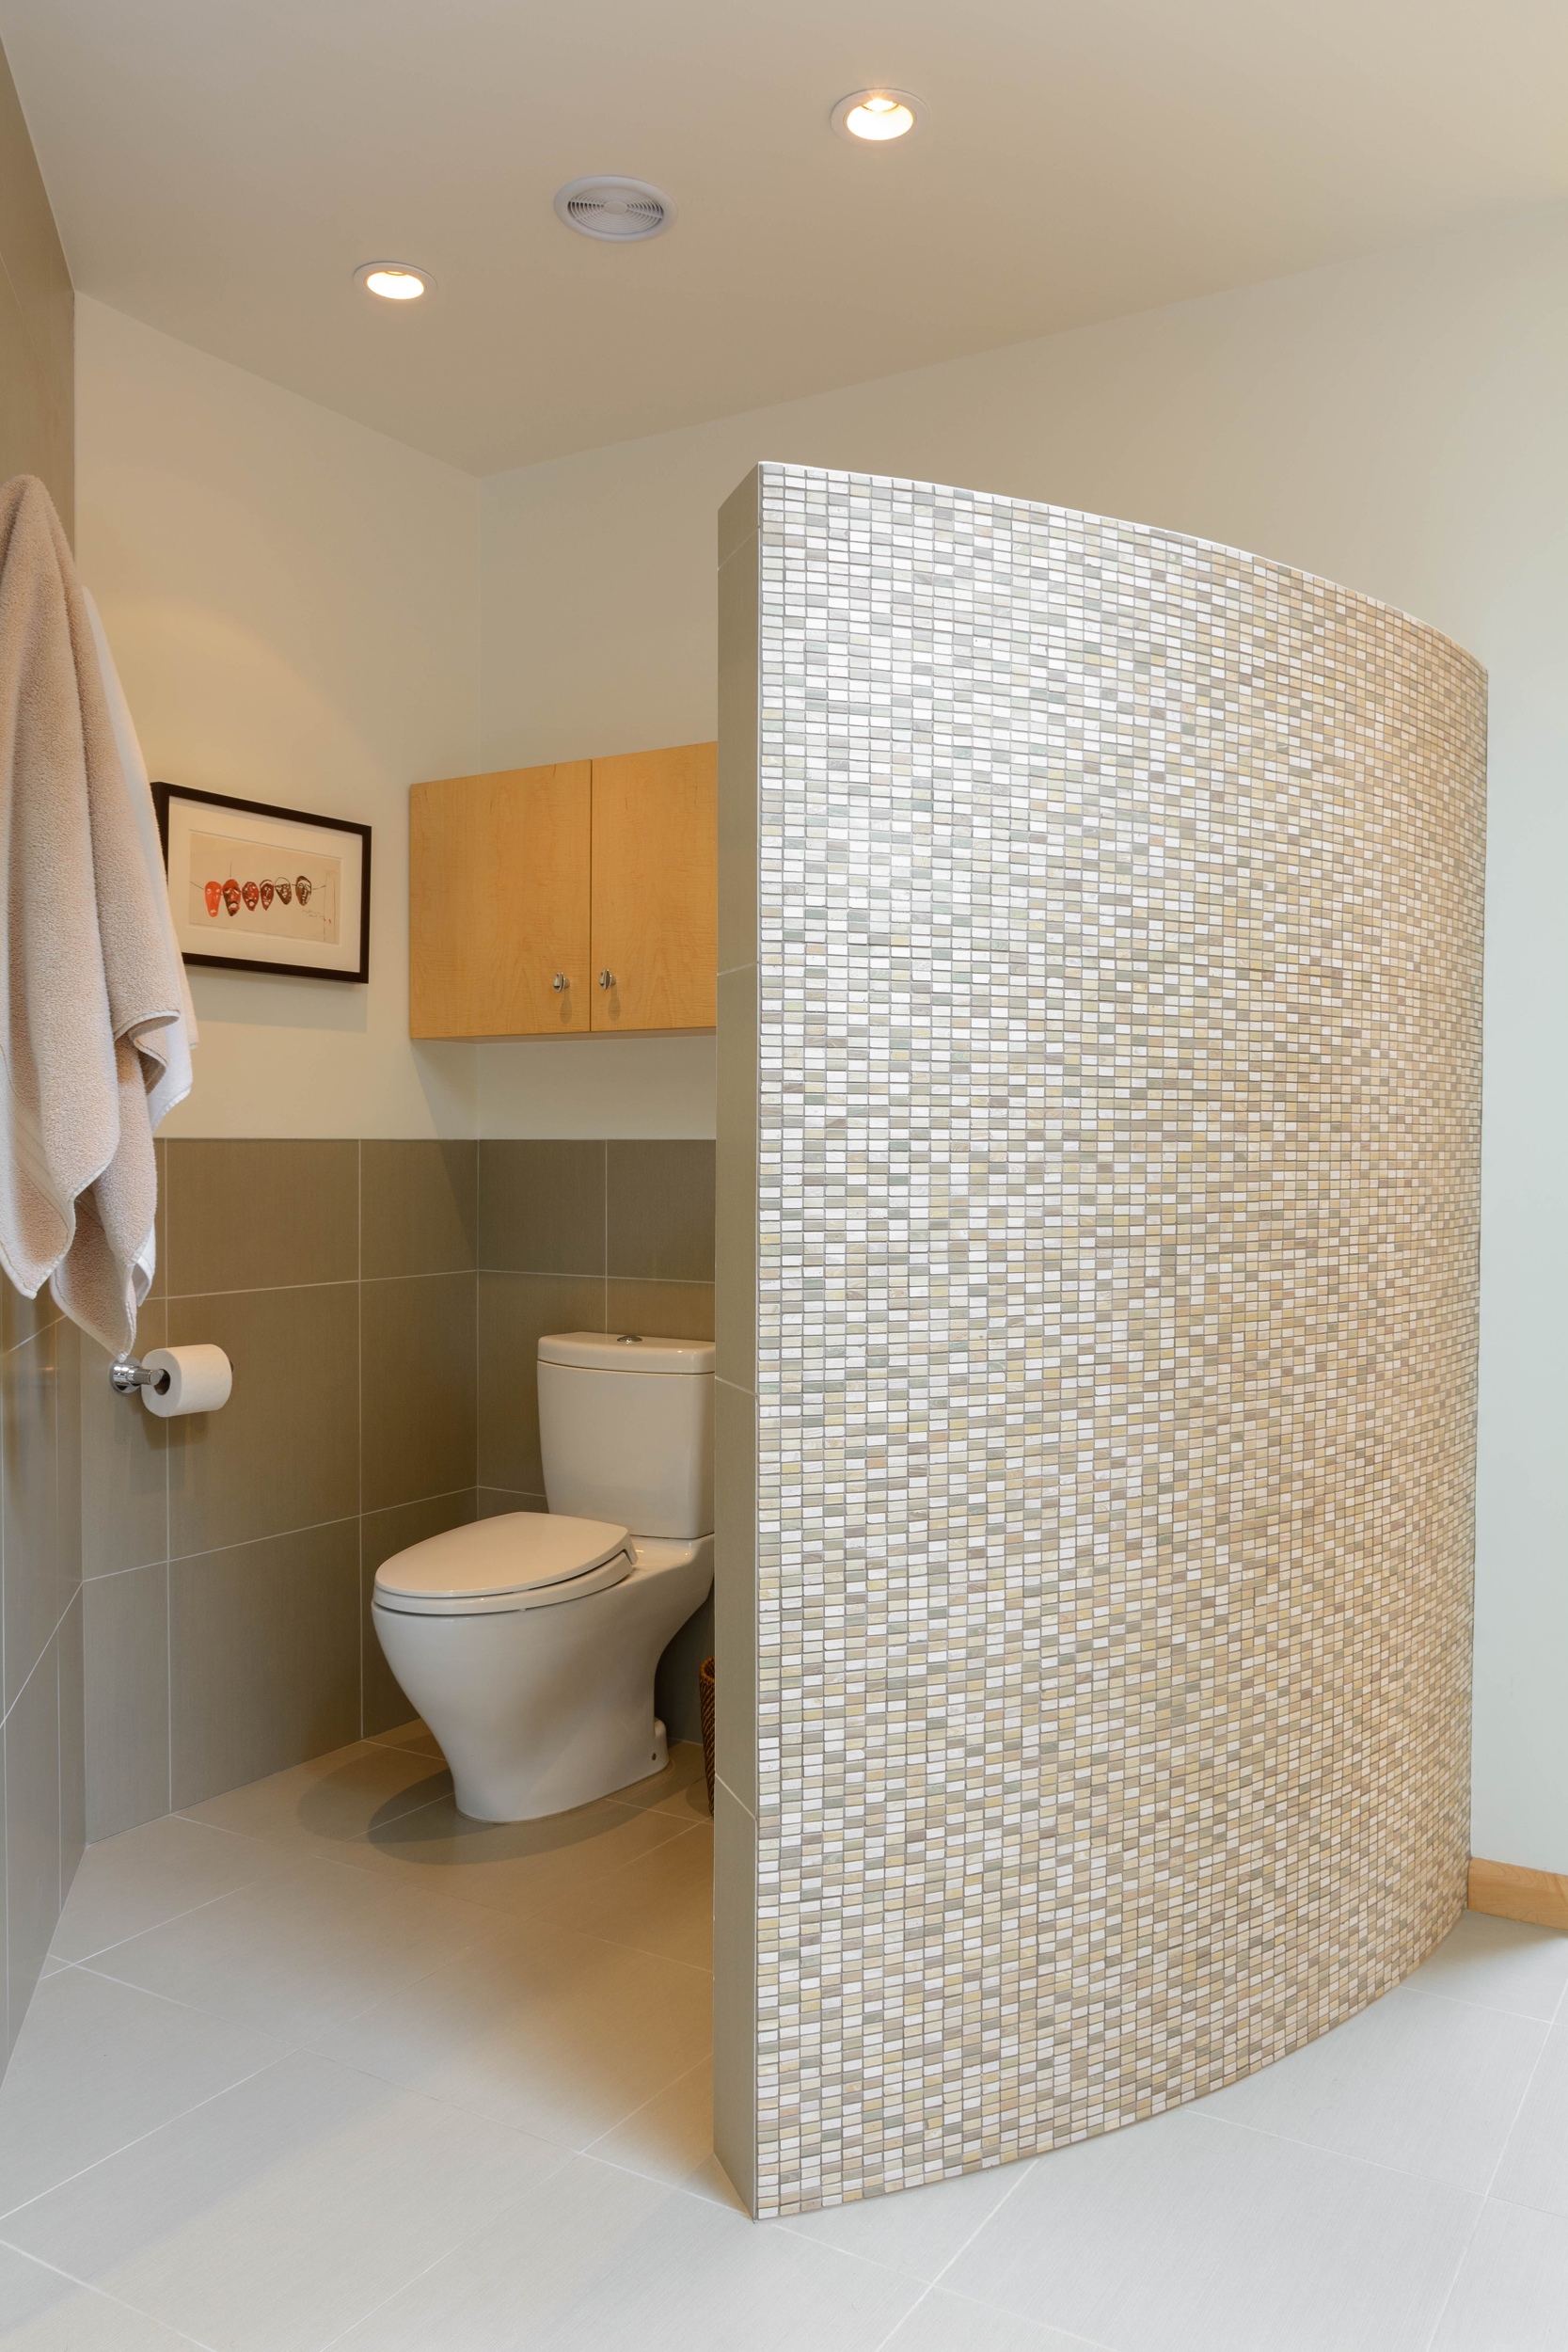 This tile curved privacy wall separates the water closet and bidet from the rest of the master bathroom